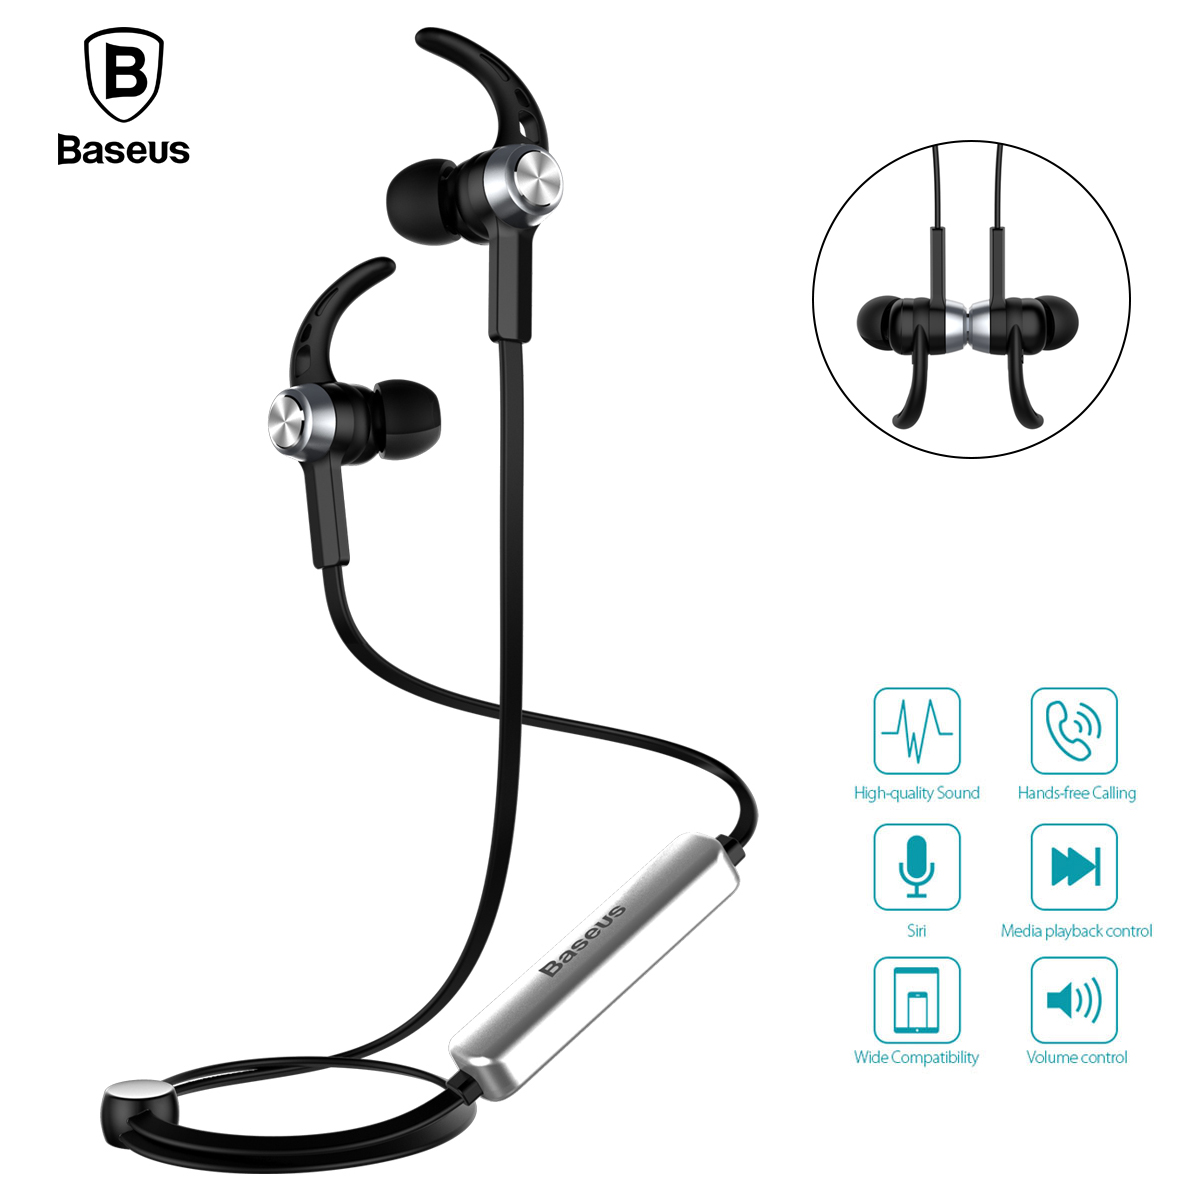 Baseus Magnet Wireless Bluetooth Earphone Headphone B11 For iPhone 7 Samsung Sport Running Stereo Hifi With Mic In ear Headset baseus magnetic bluetooth earphone for iphone 7 samsung s8 wireless sport running stereo in ear earbuds headset mp3 mp4 earpiece